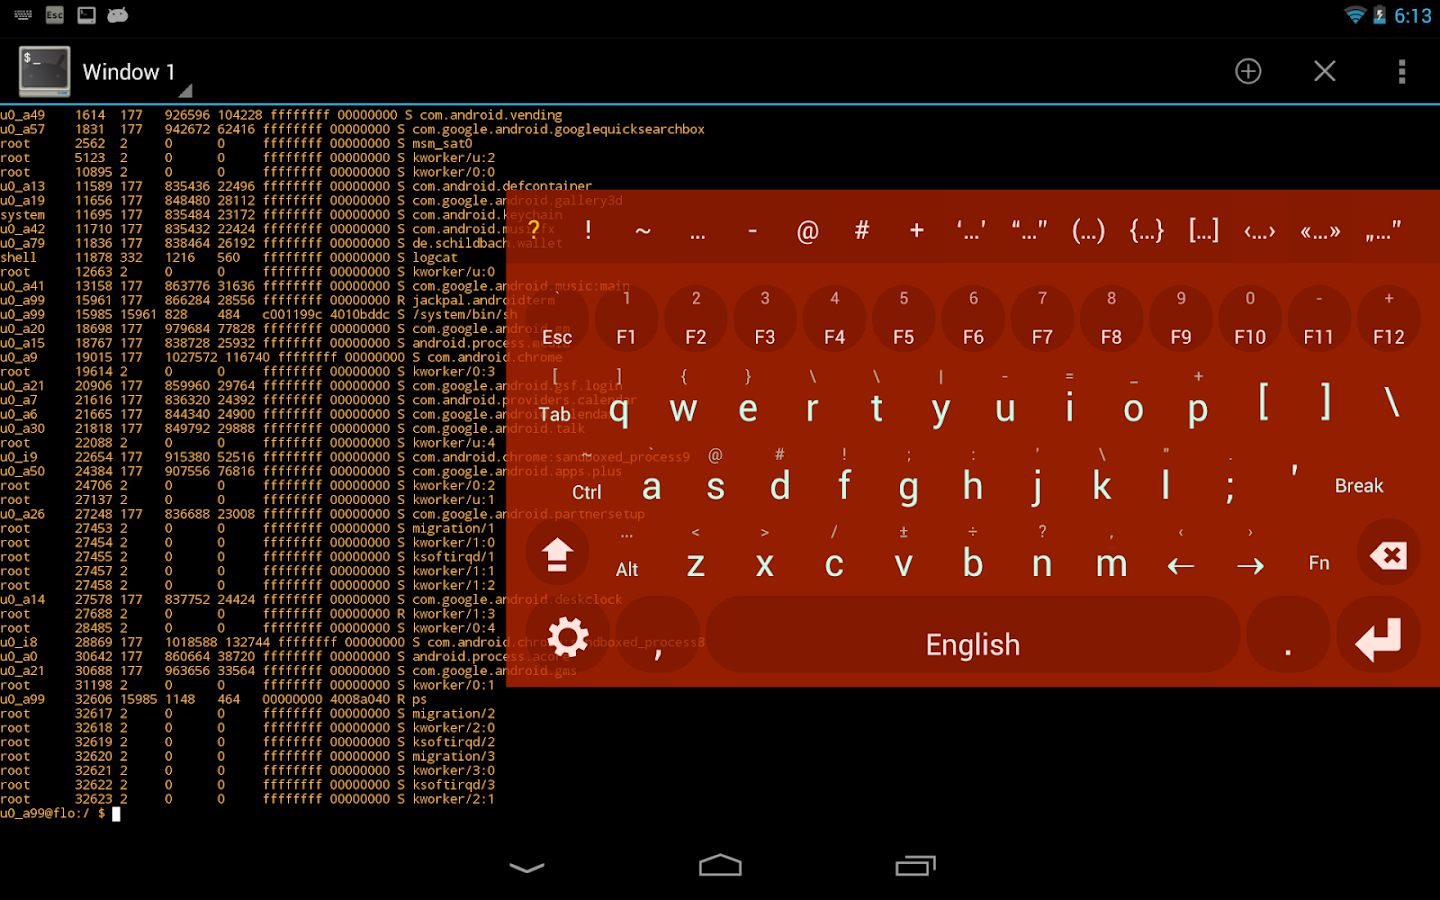 Multiling O Keyboard + emoji: captura de tela